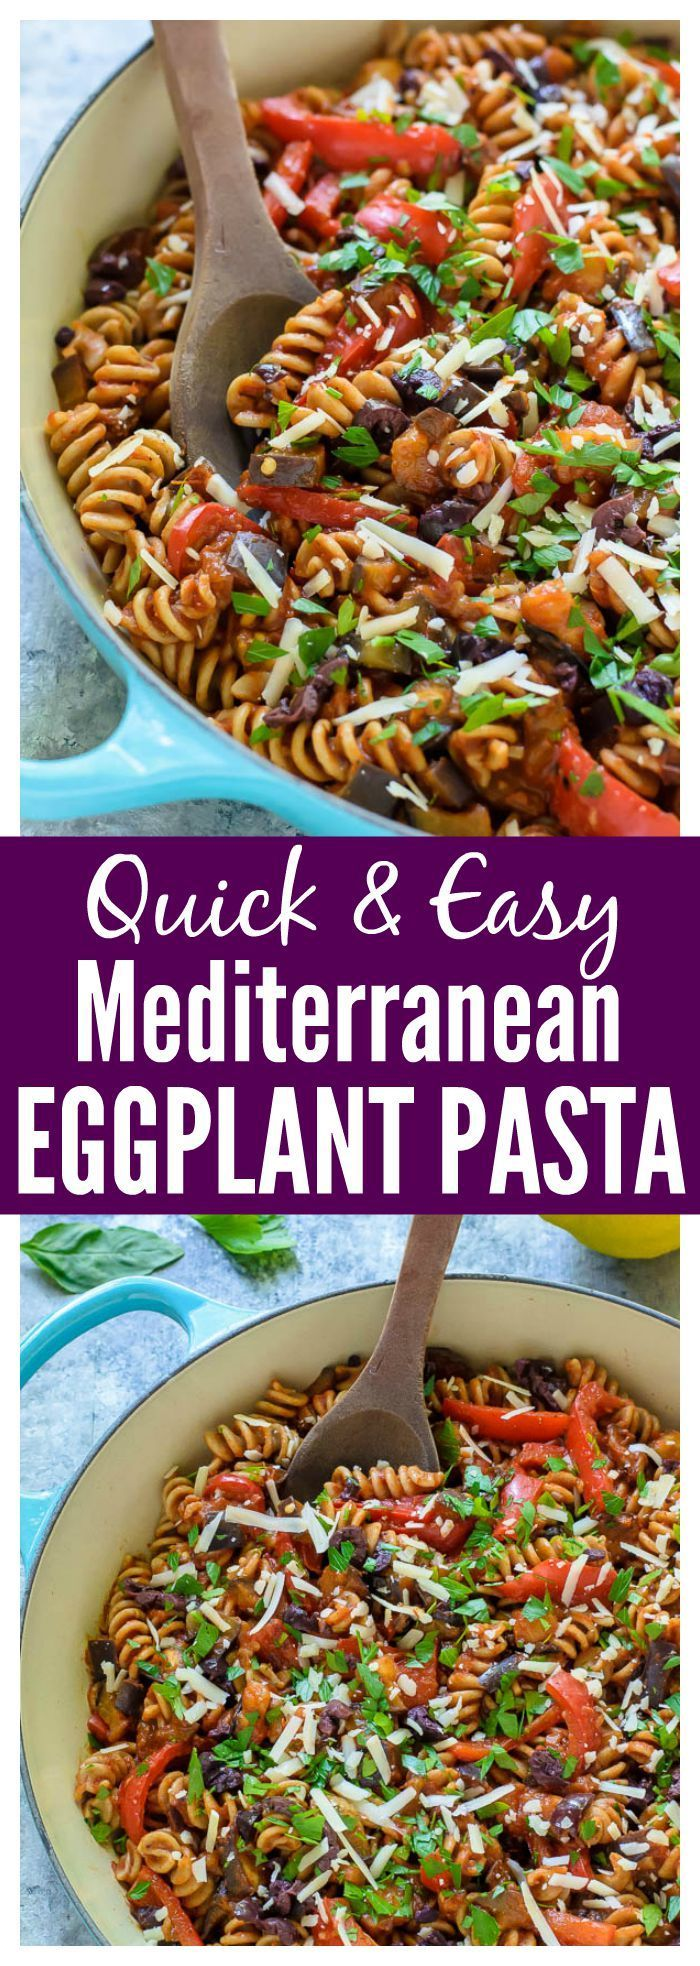 Quick and easy Mediterranean Eggplant Pasta. A healthy 30 minute meal! Recipe at wellplated.com @wellplated #glutenfree #eggplant #wholewheatpasta